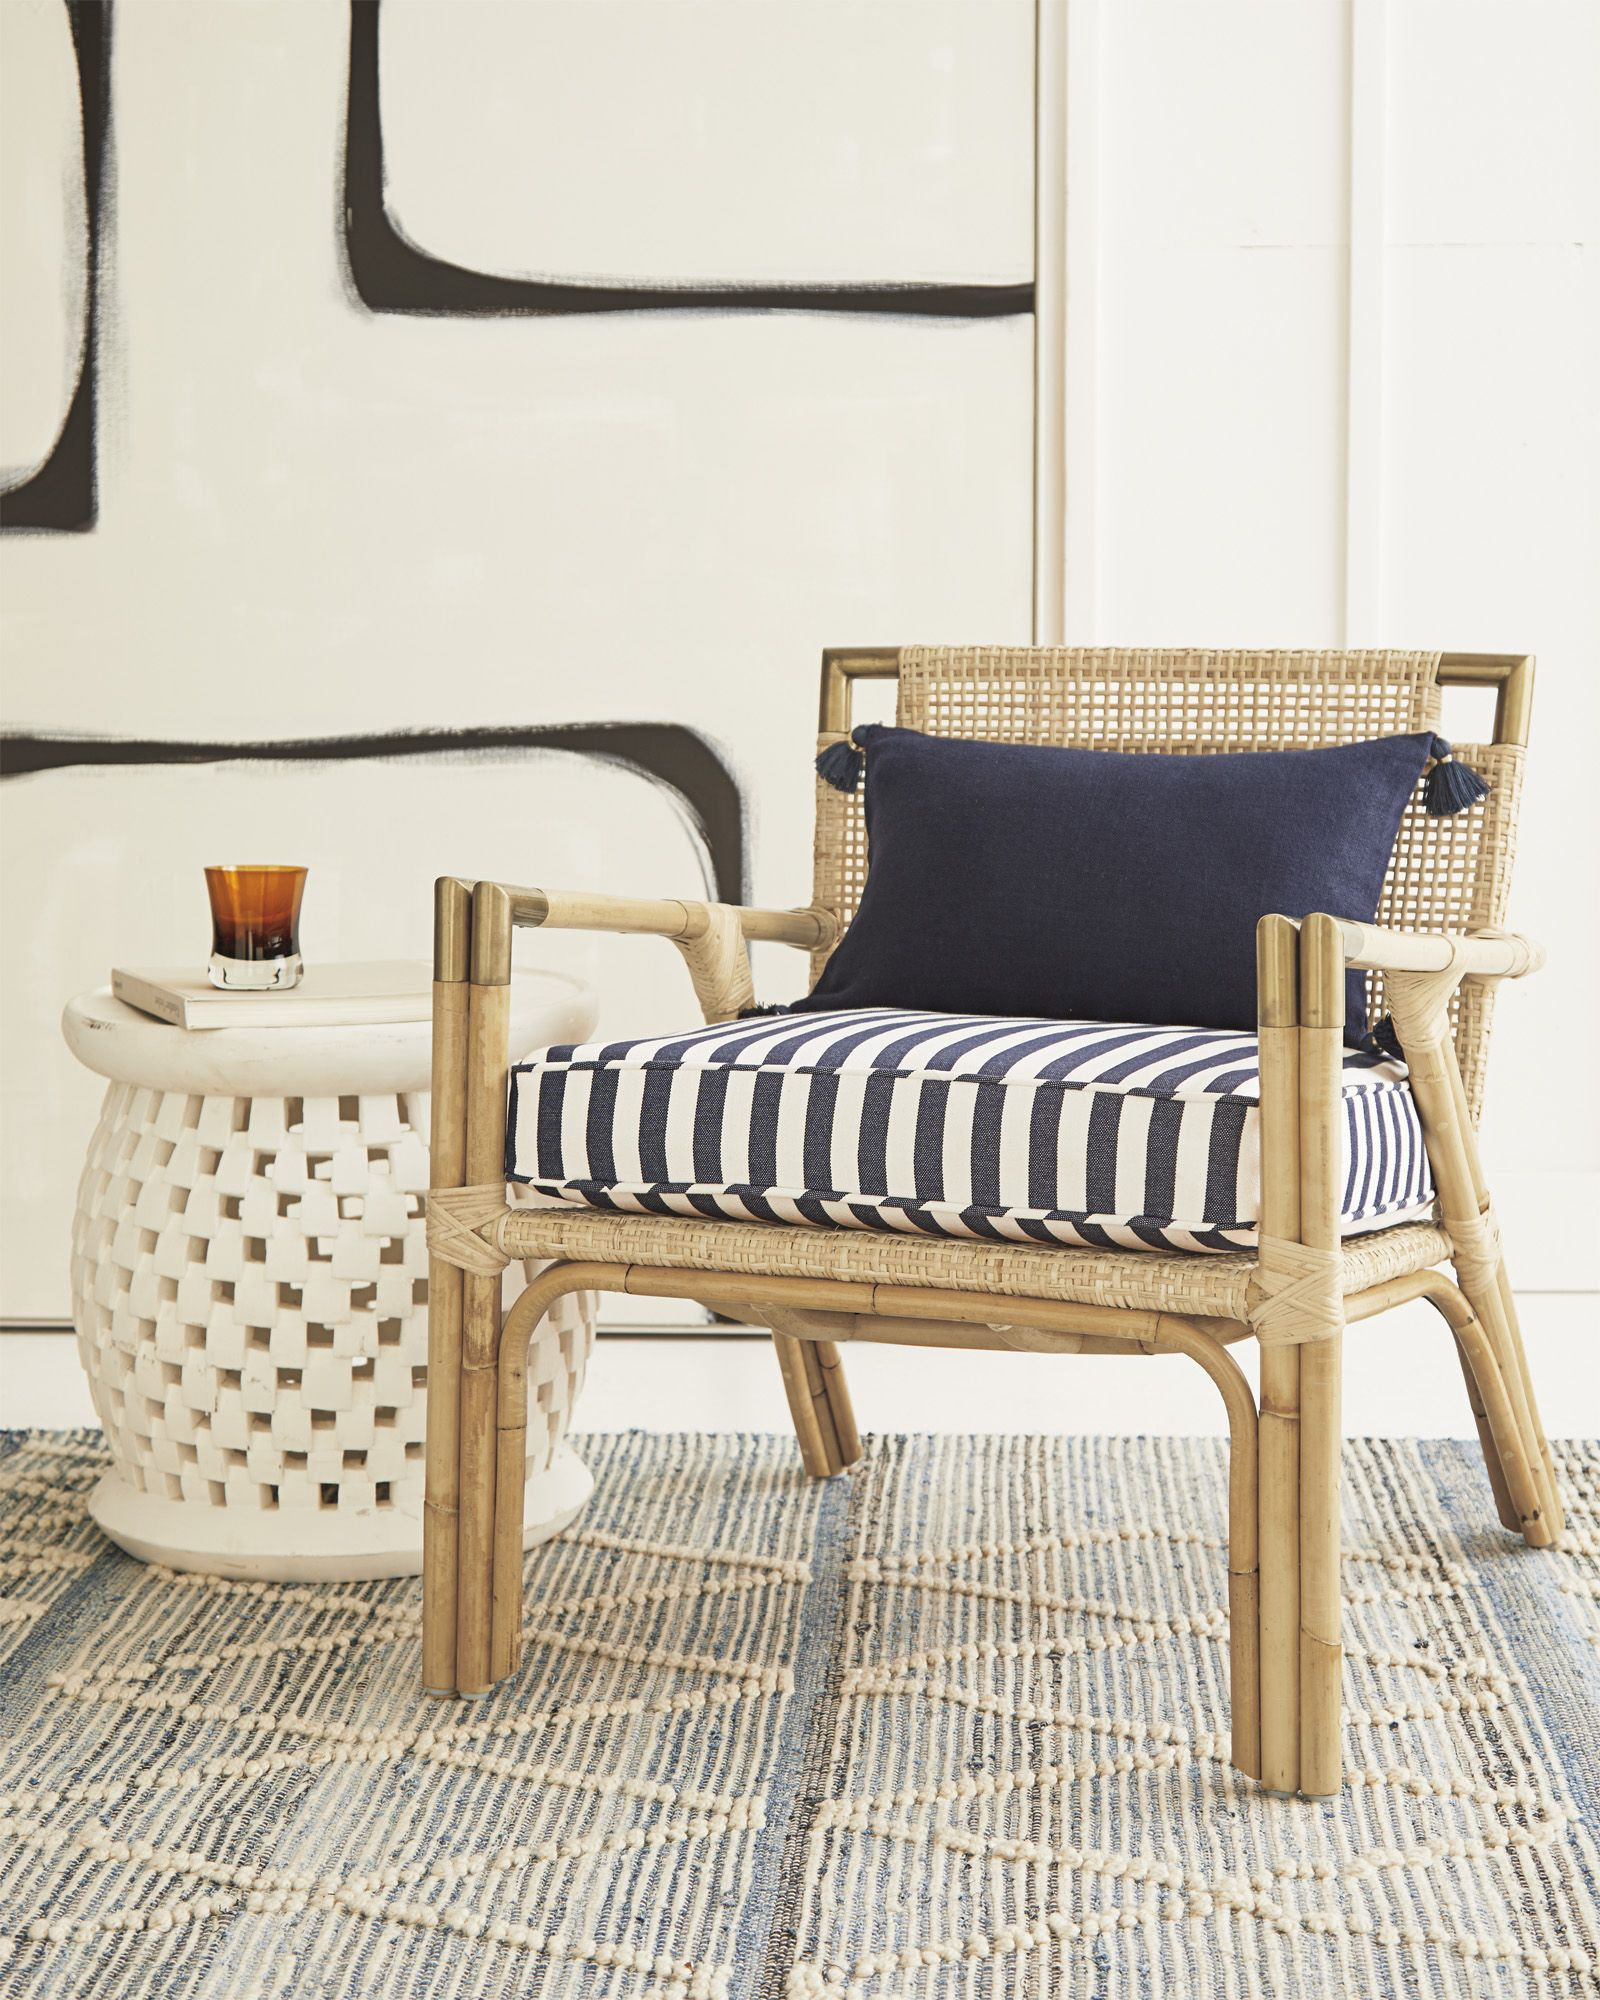 Wooden armchair with cushion - Mattituck Armchair With Cushion Via Serena Lily